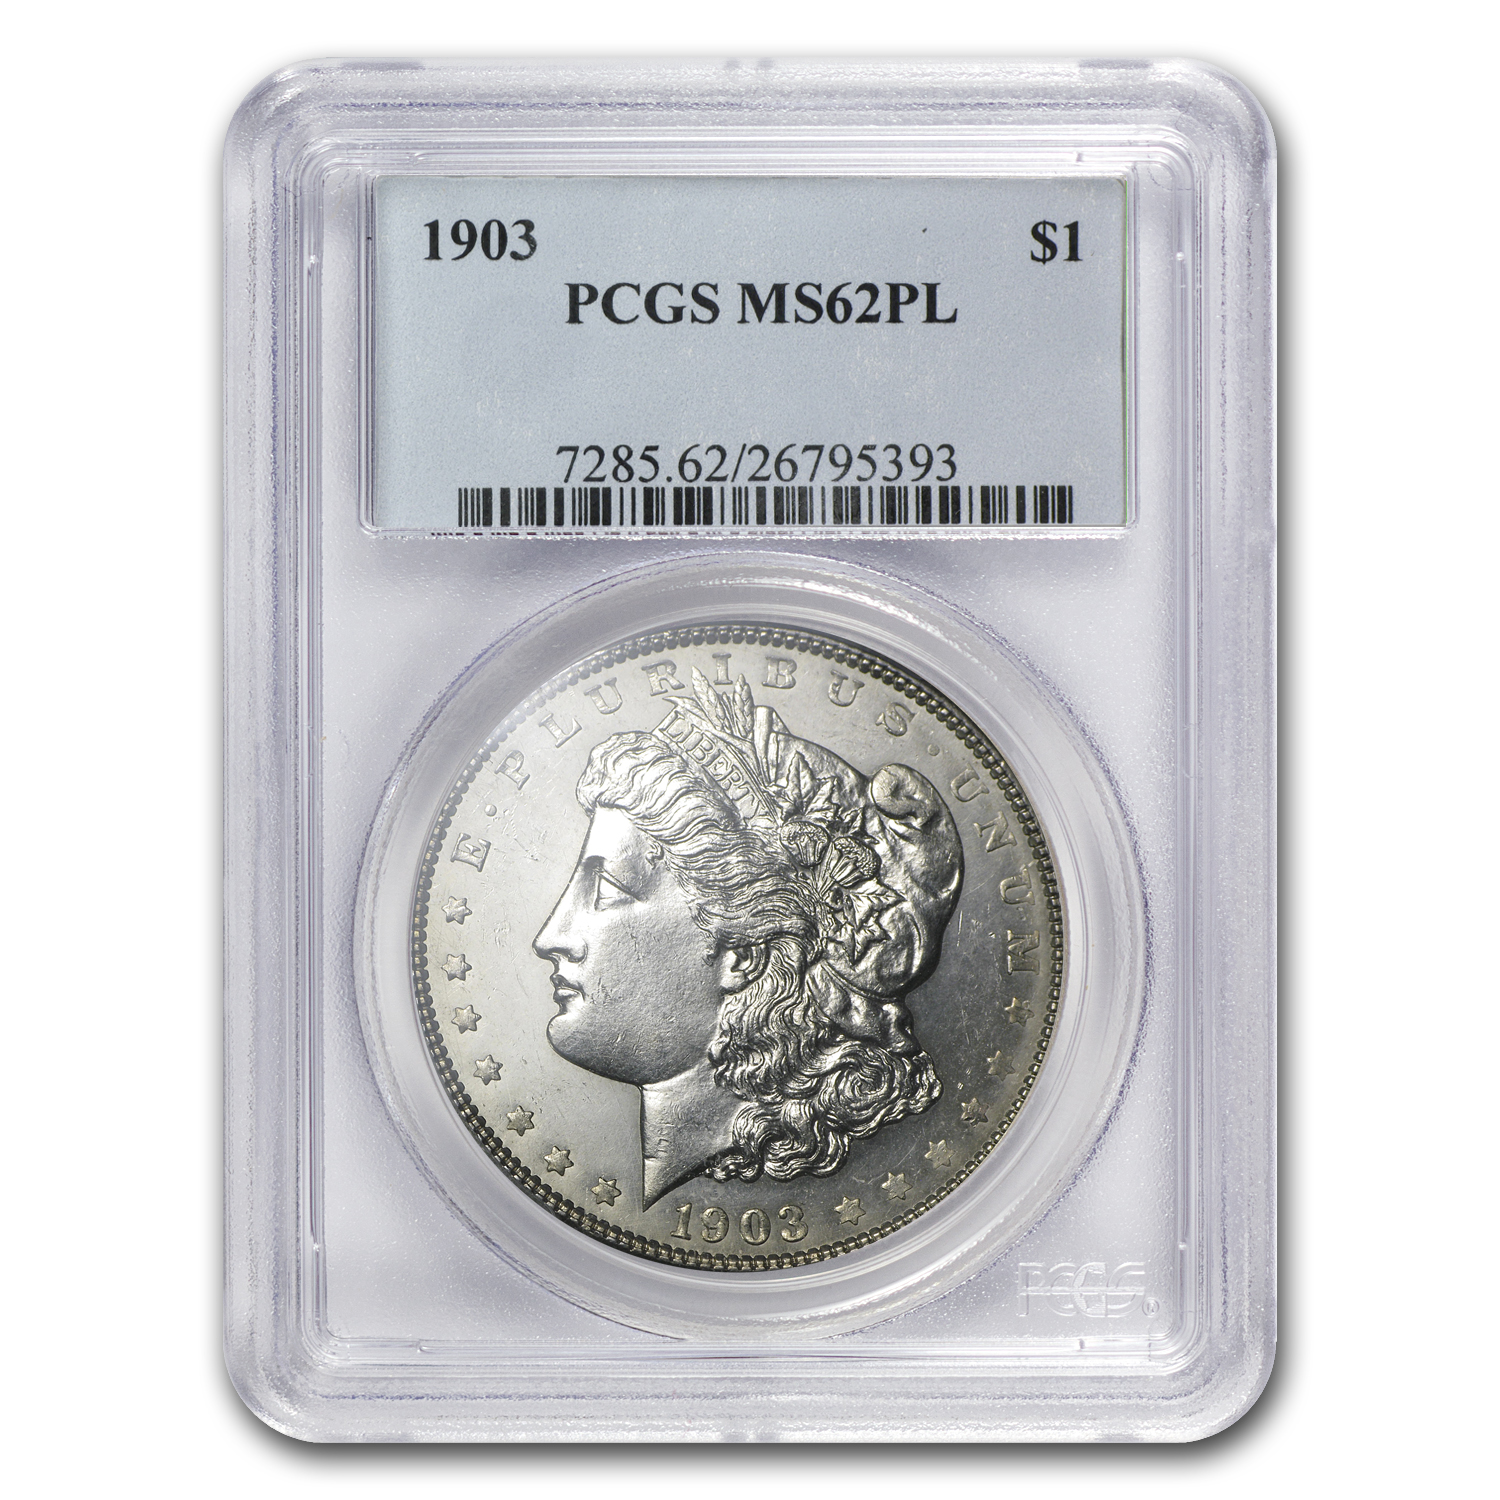 1903 Morgan Dollar MS-62 PL Proof Like PCGS